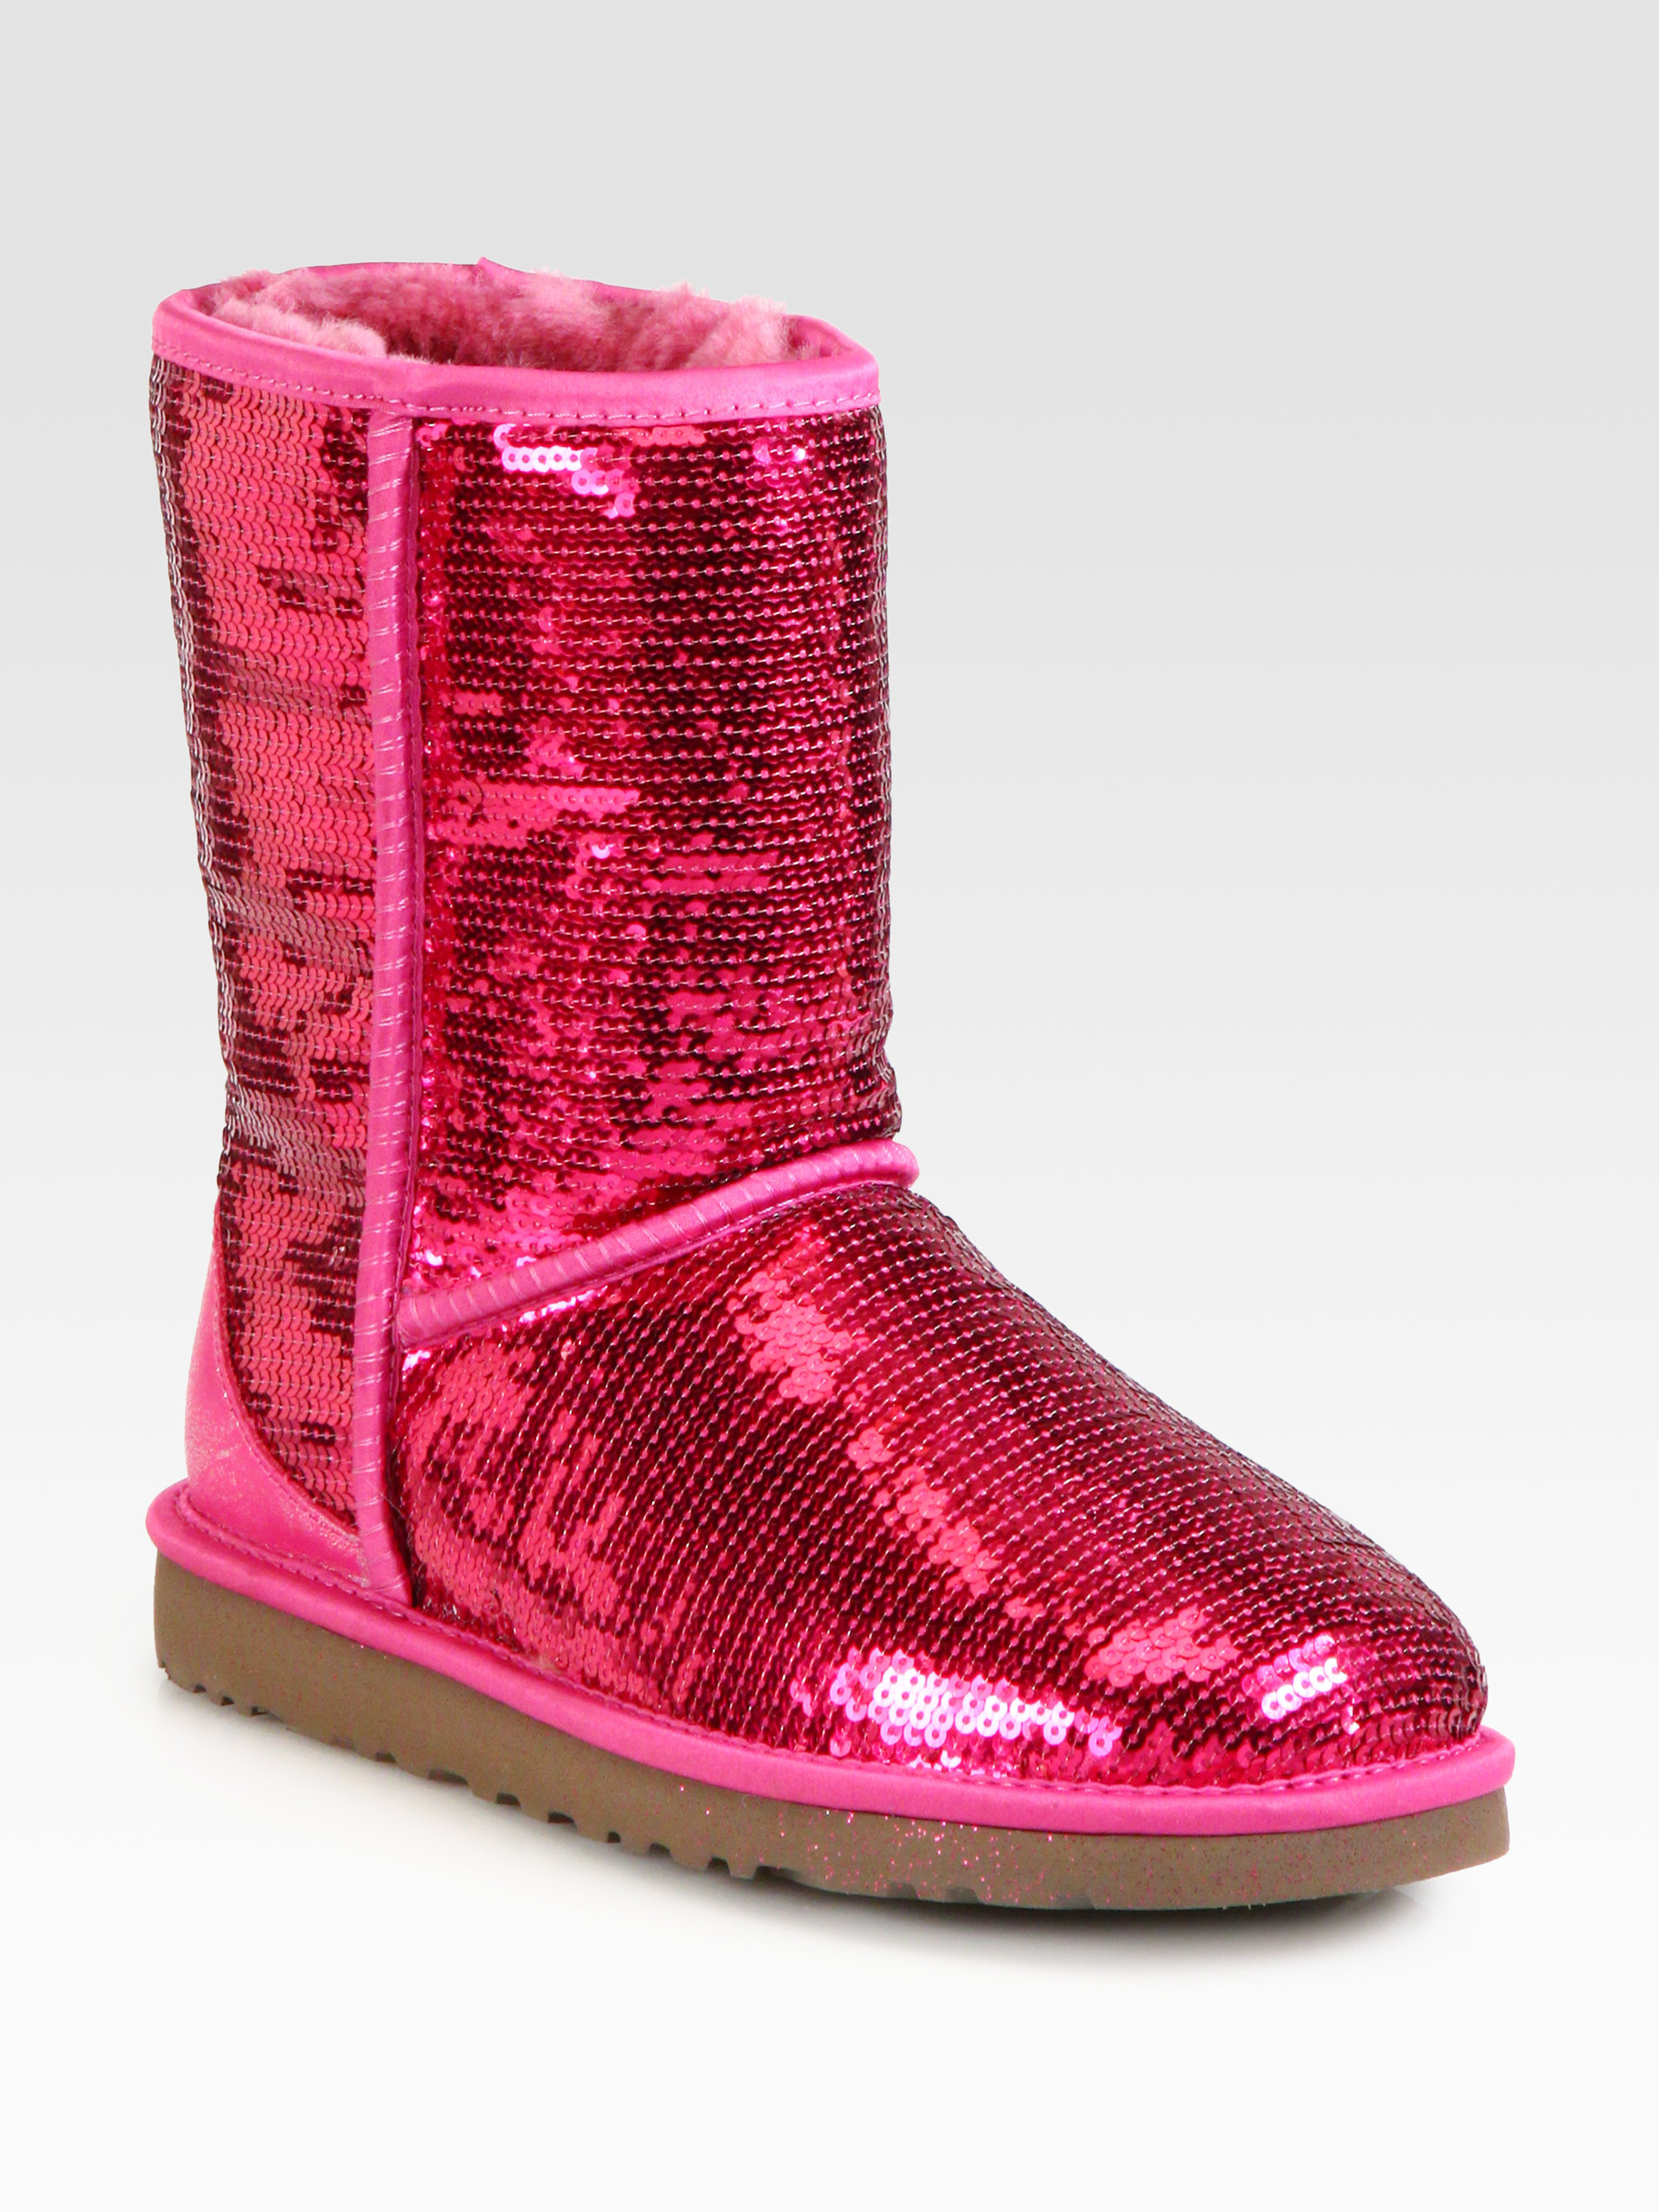 Lyst Ugg Classic Short Sequin Boots In Pink